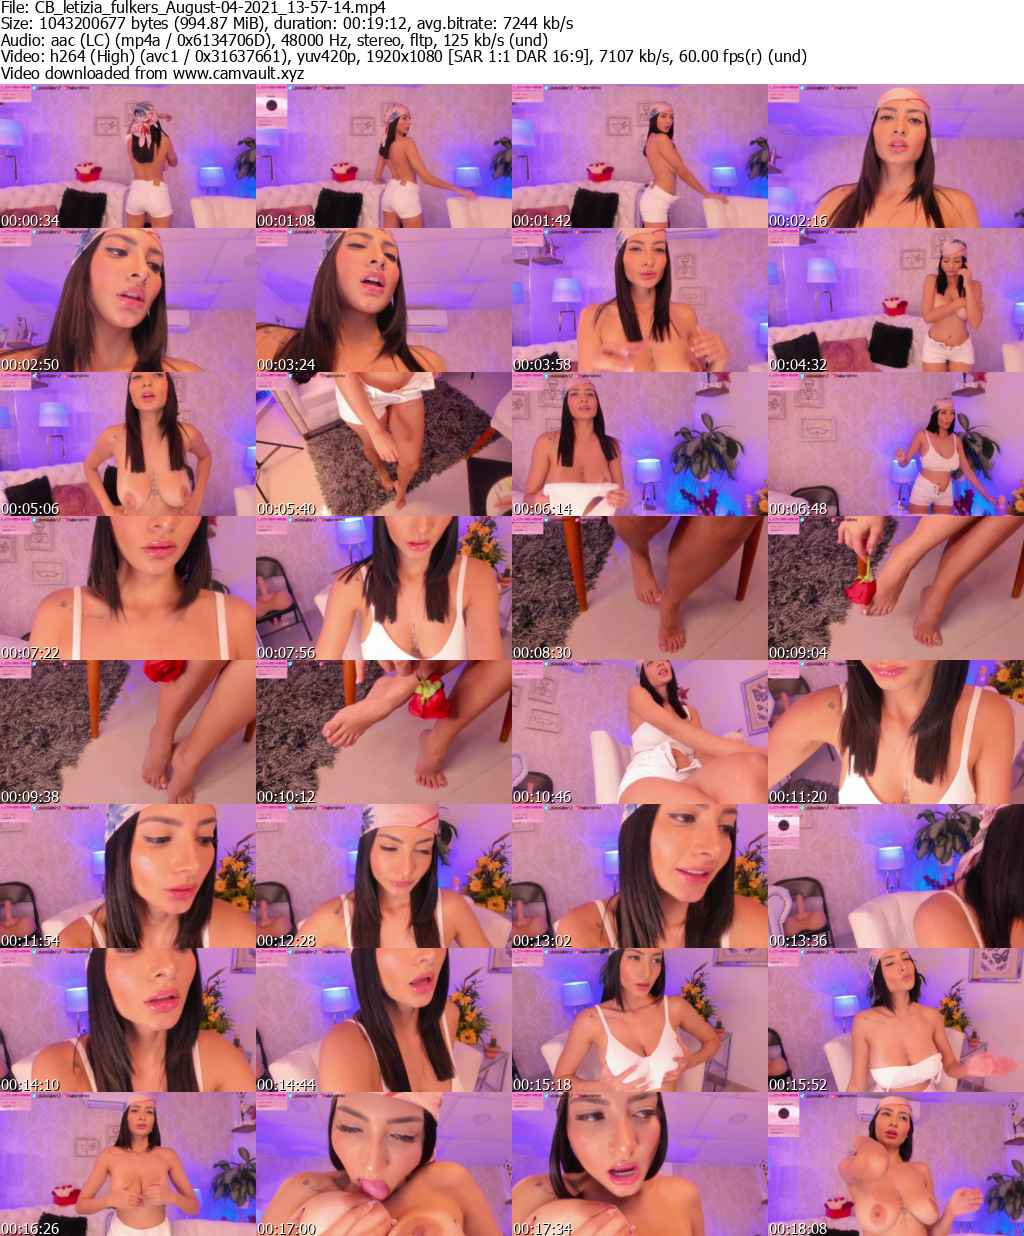 Video preview for model letizia_fulkers